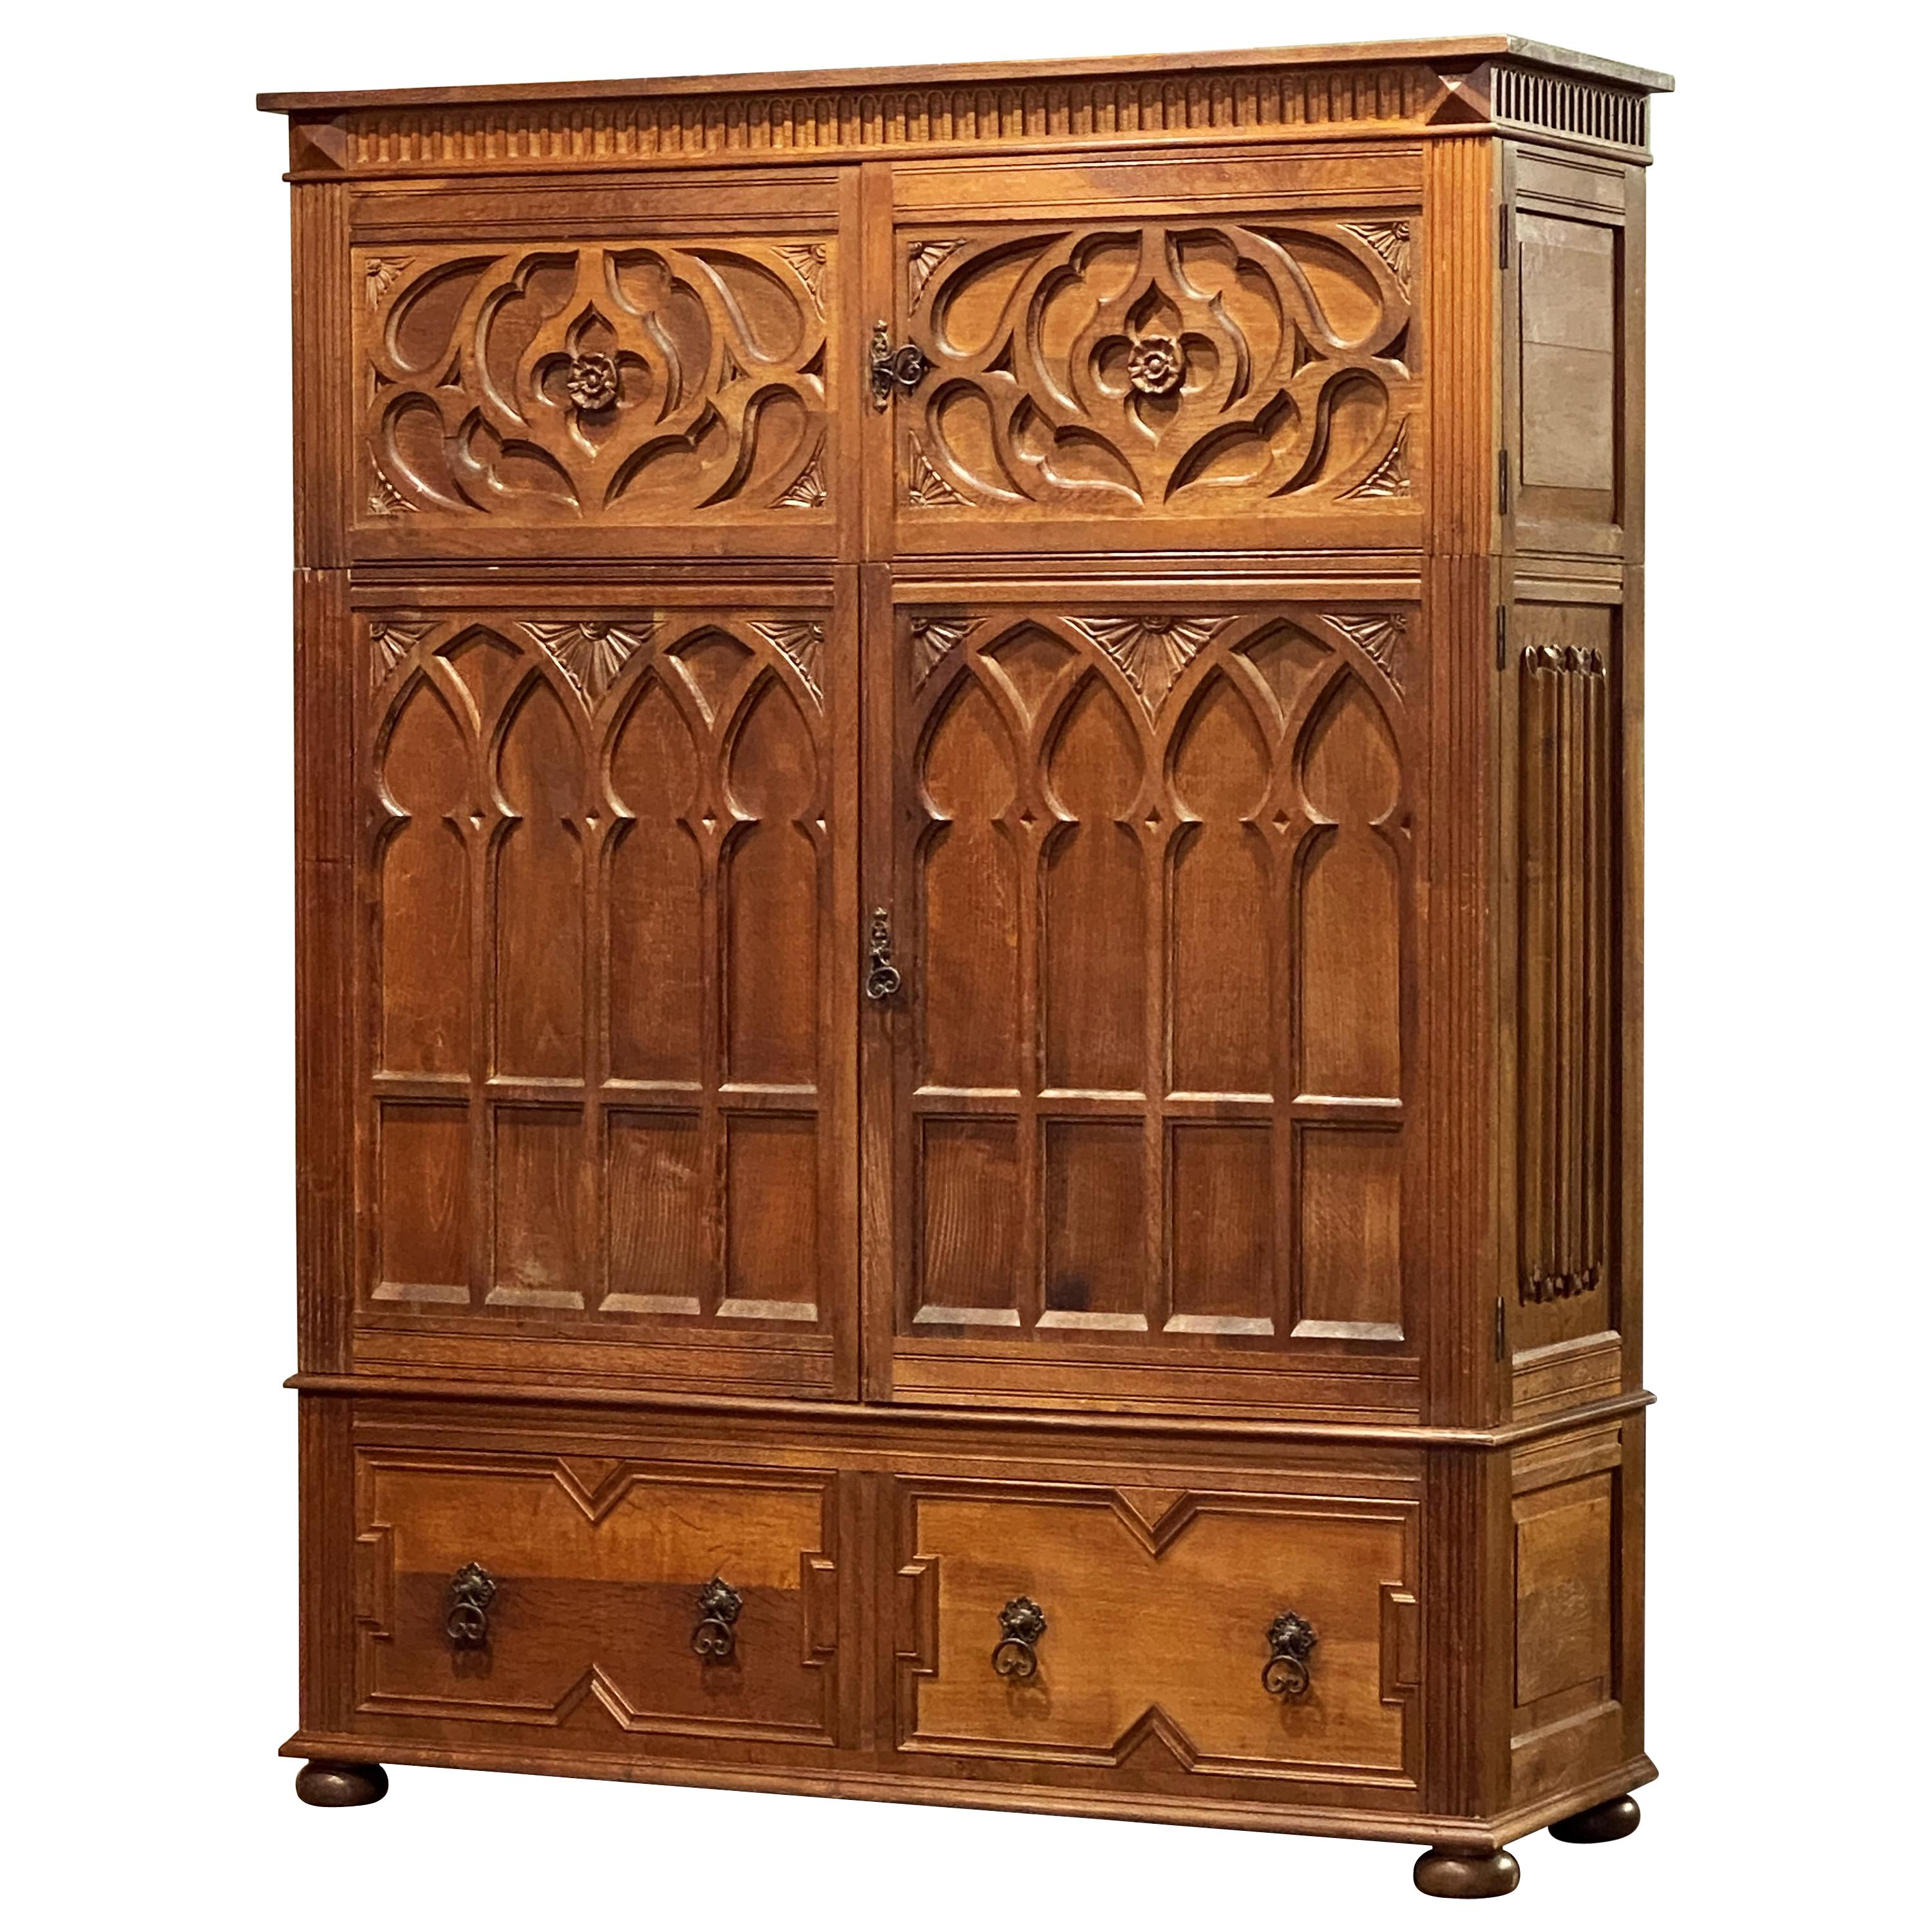 Large English Historical Housekeeper's Cabinet or Cupboard of Oak